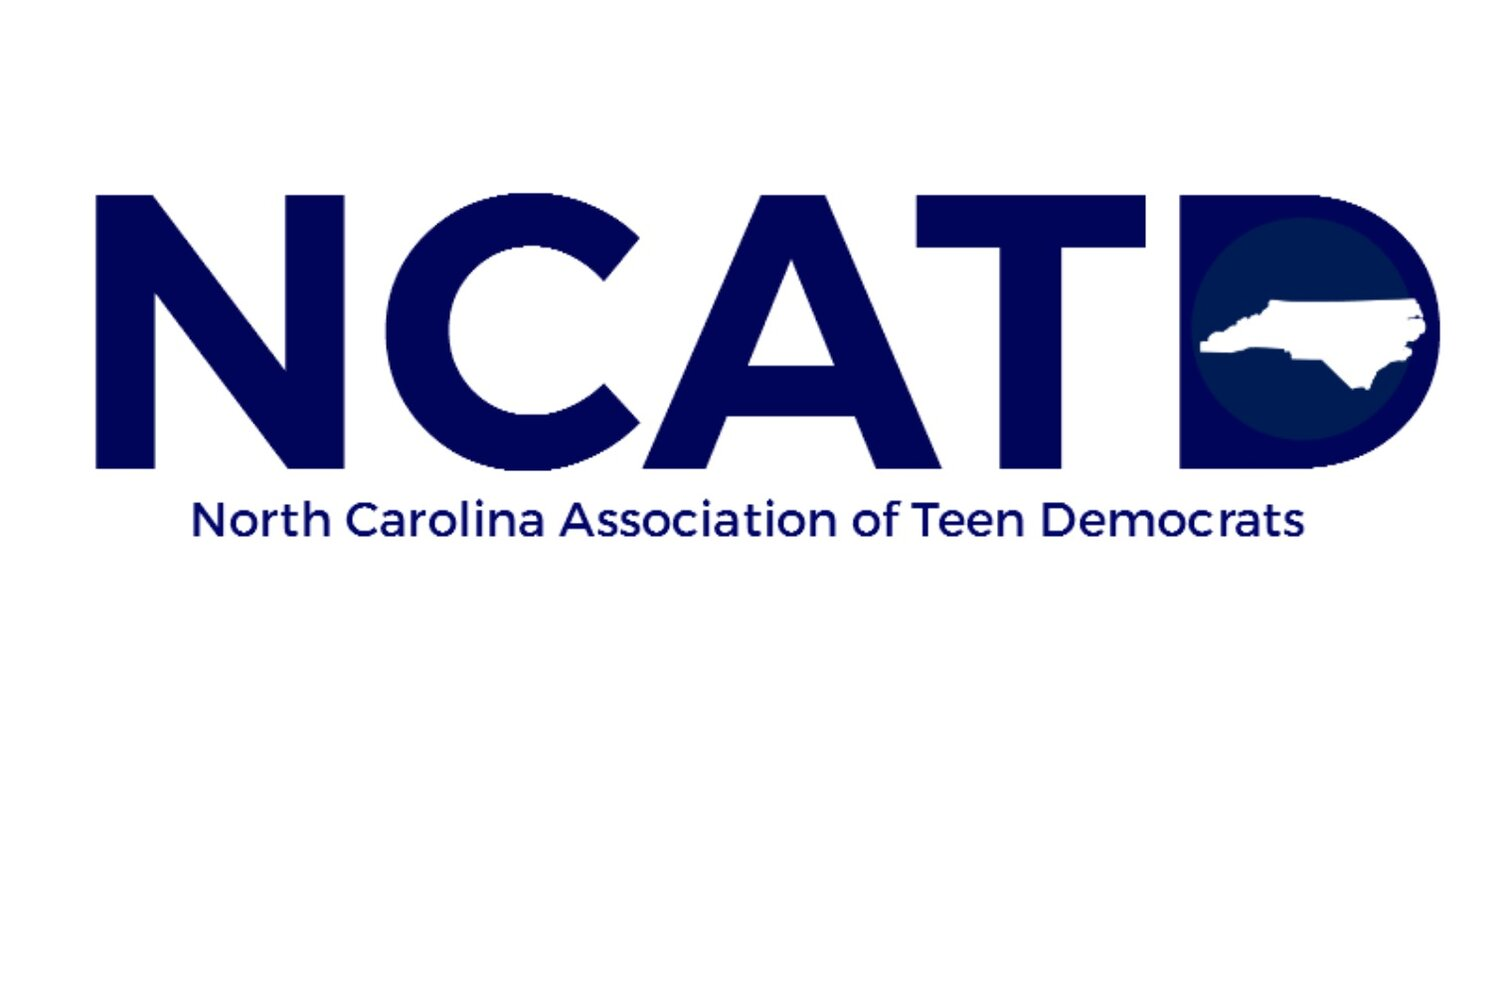 North Carolina Association of Teen Democrats